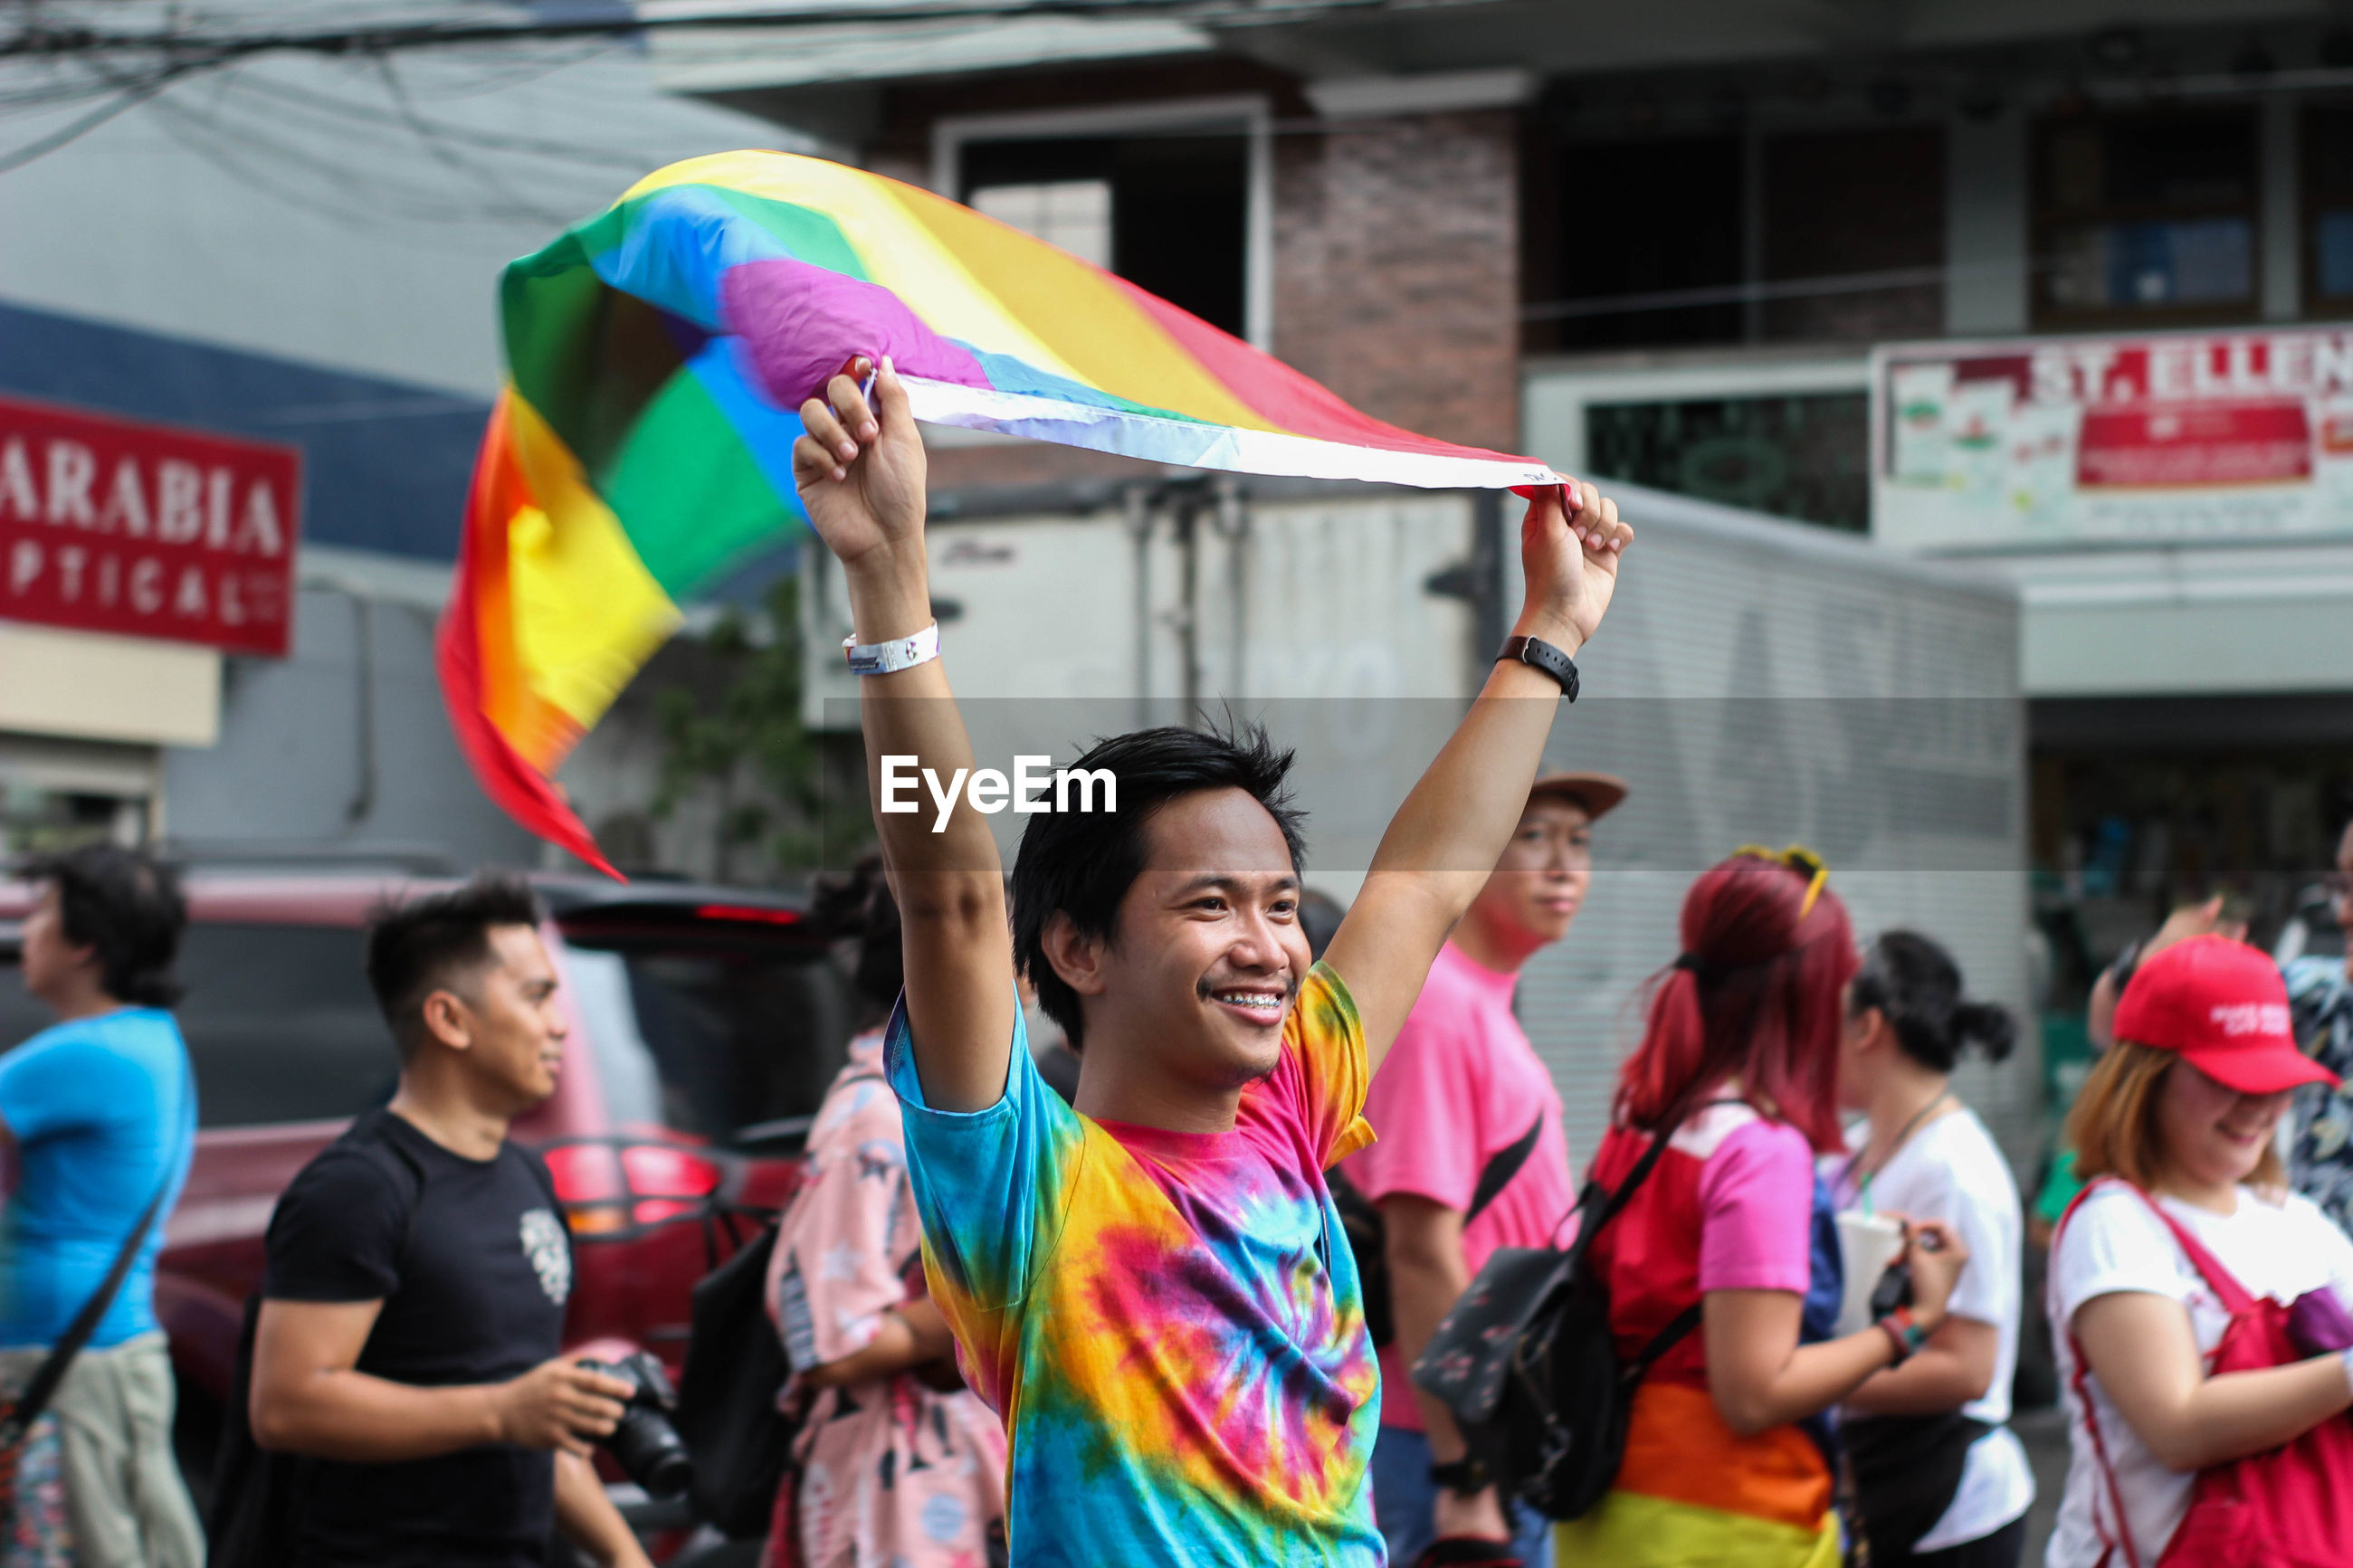 Smiling man holding rainbow flag while standing in city